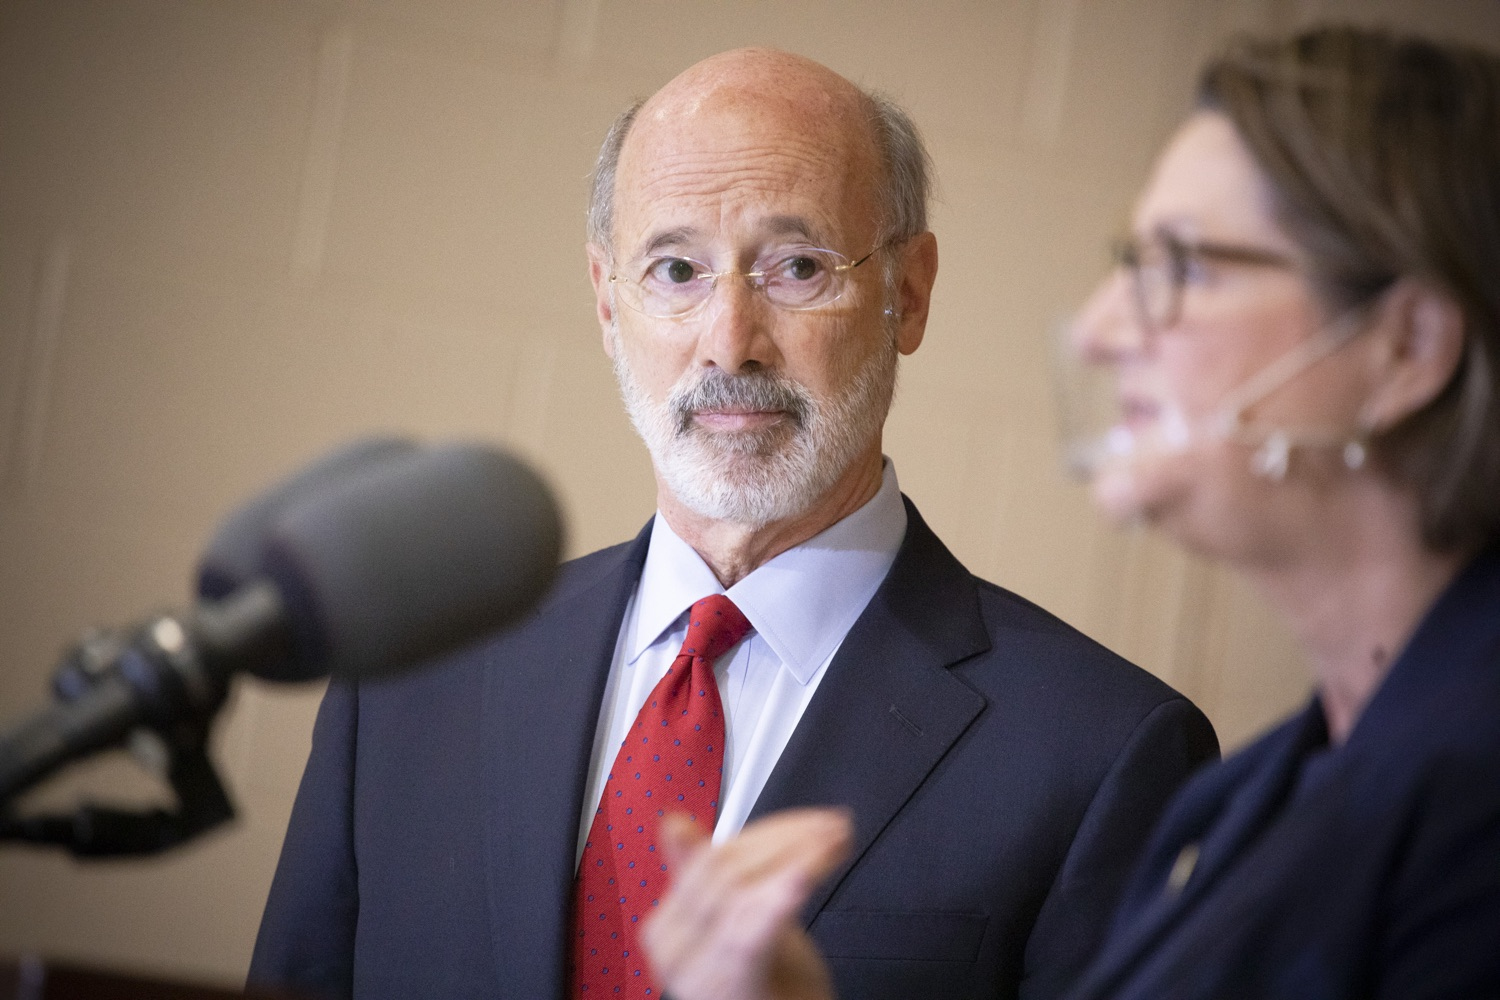 "<a href=""https://filesource.wostreaming.net/commonwealthofpa/photo/18310_gov_adult_use_cannabis_dz_007.jpg"" target=""_blank"">⇣ Download Photo<br></a>Governor Tom Wolf listens as Rep. Maureen Madden  speaks to the press.Governor Tom Wolf visited The Mountain Center in Tobyhanna, Monroe County today to talk about the economic growth potential and restorative justice benefits of legalizing adult-use cannabis, something the state General Assembly has not yet done despite multiple requests from the governor and Lieutenant Governor John Fetterman to take up legislation this fall.  Tobyhanna, PA  October 13, 2020"